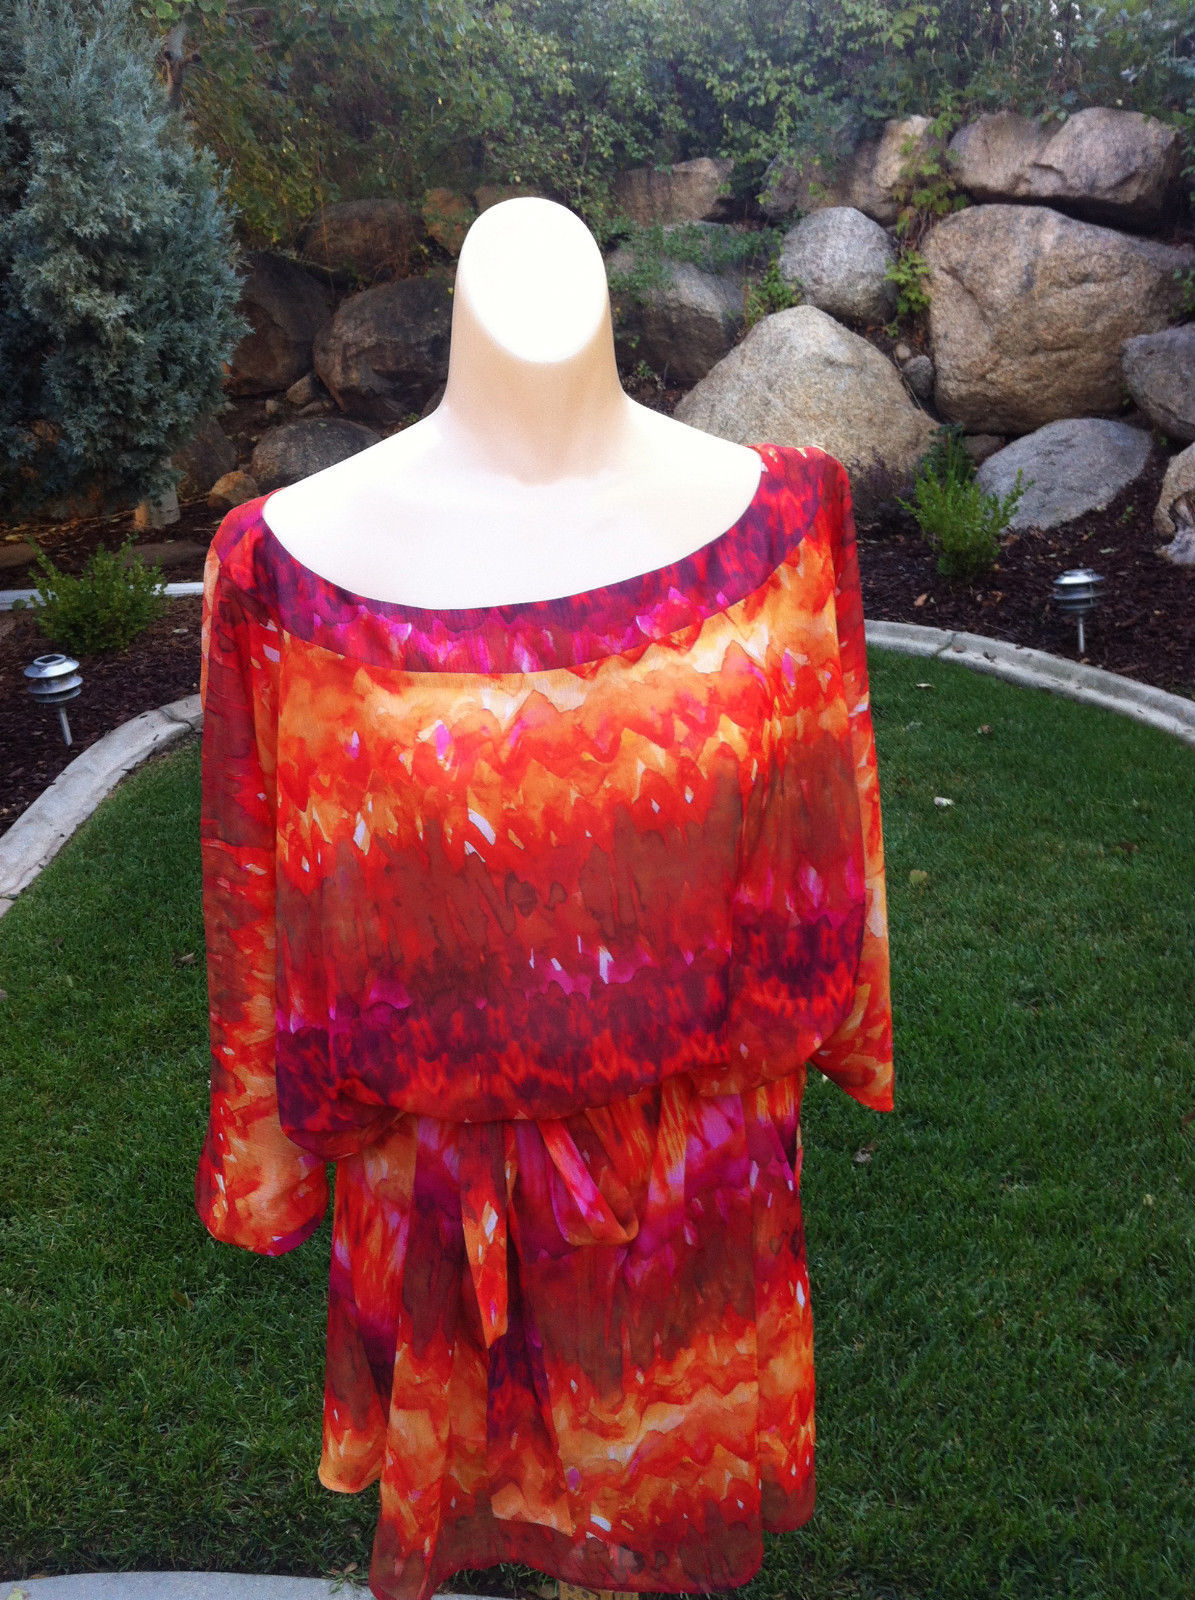 ABS BY ALLEN SWARTZ - swimsuit cover/dress cover up -MSRP $121-BNWT!!!